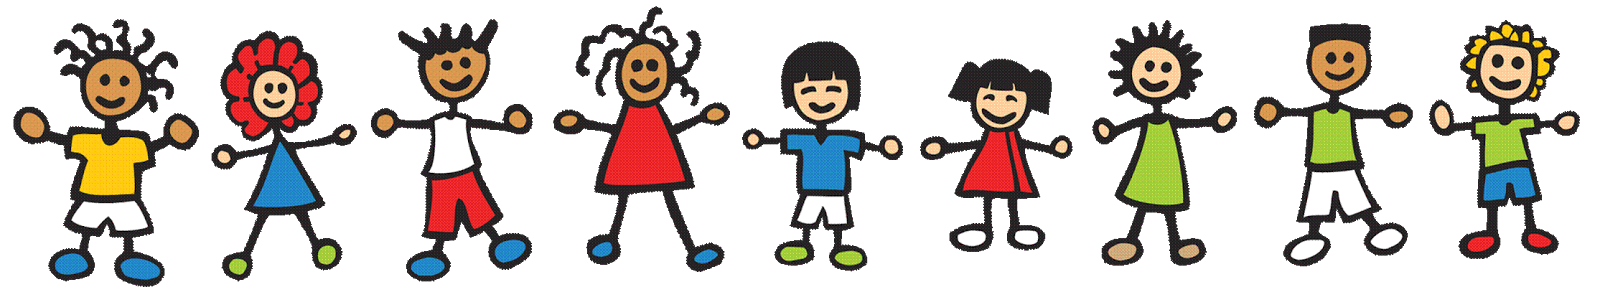 Children working at school clipart banner transparent library Free Pictures Of Children Working Together, Download Free Clip Art ... banner transparent library